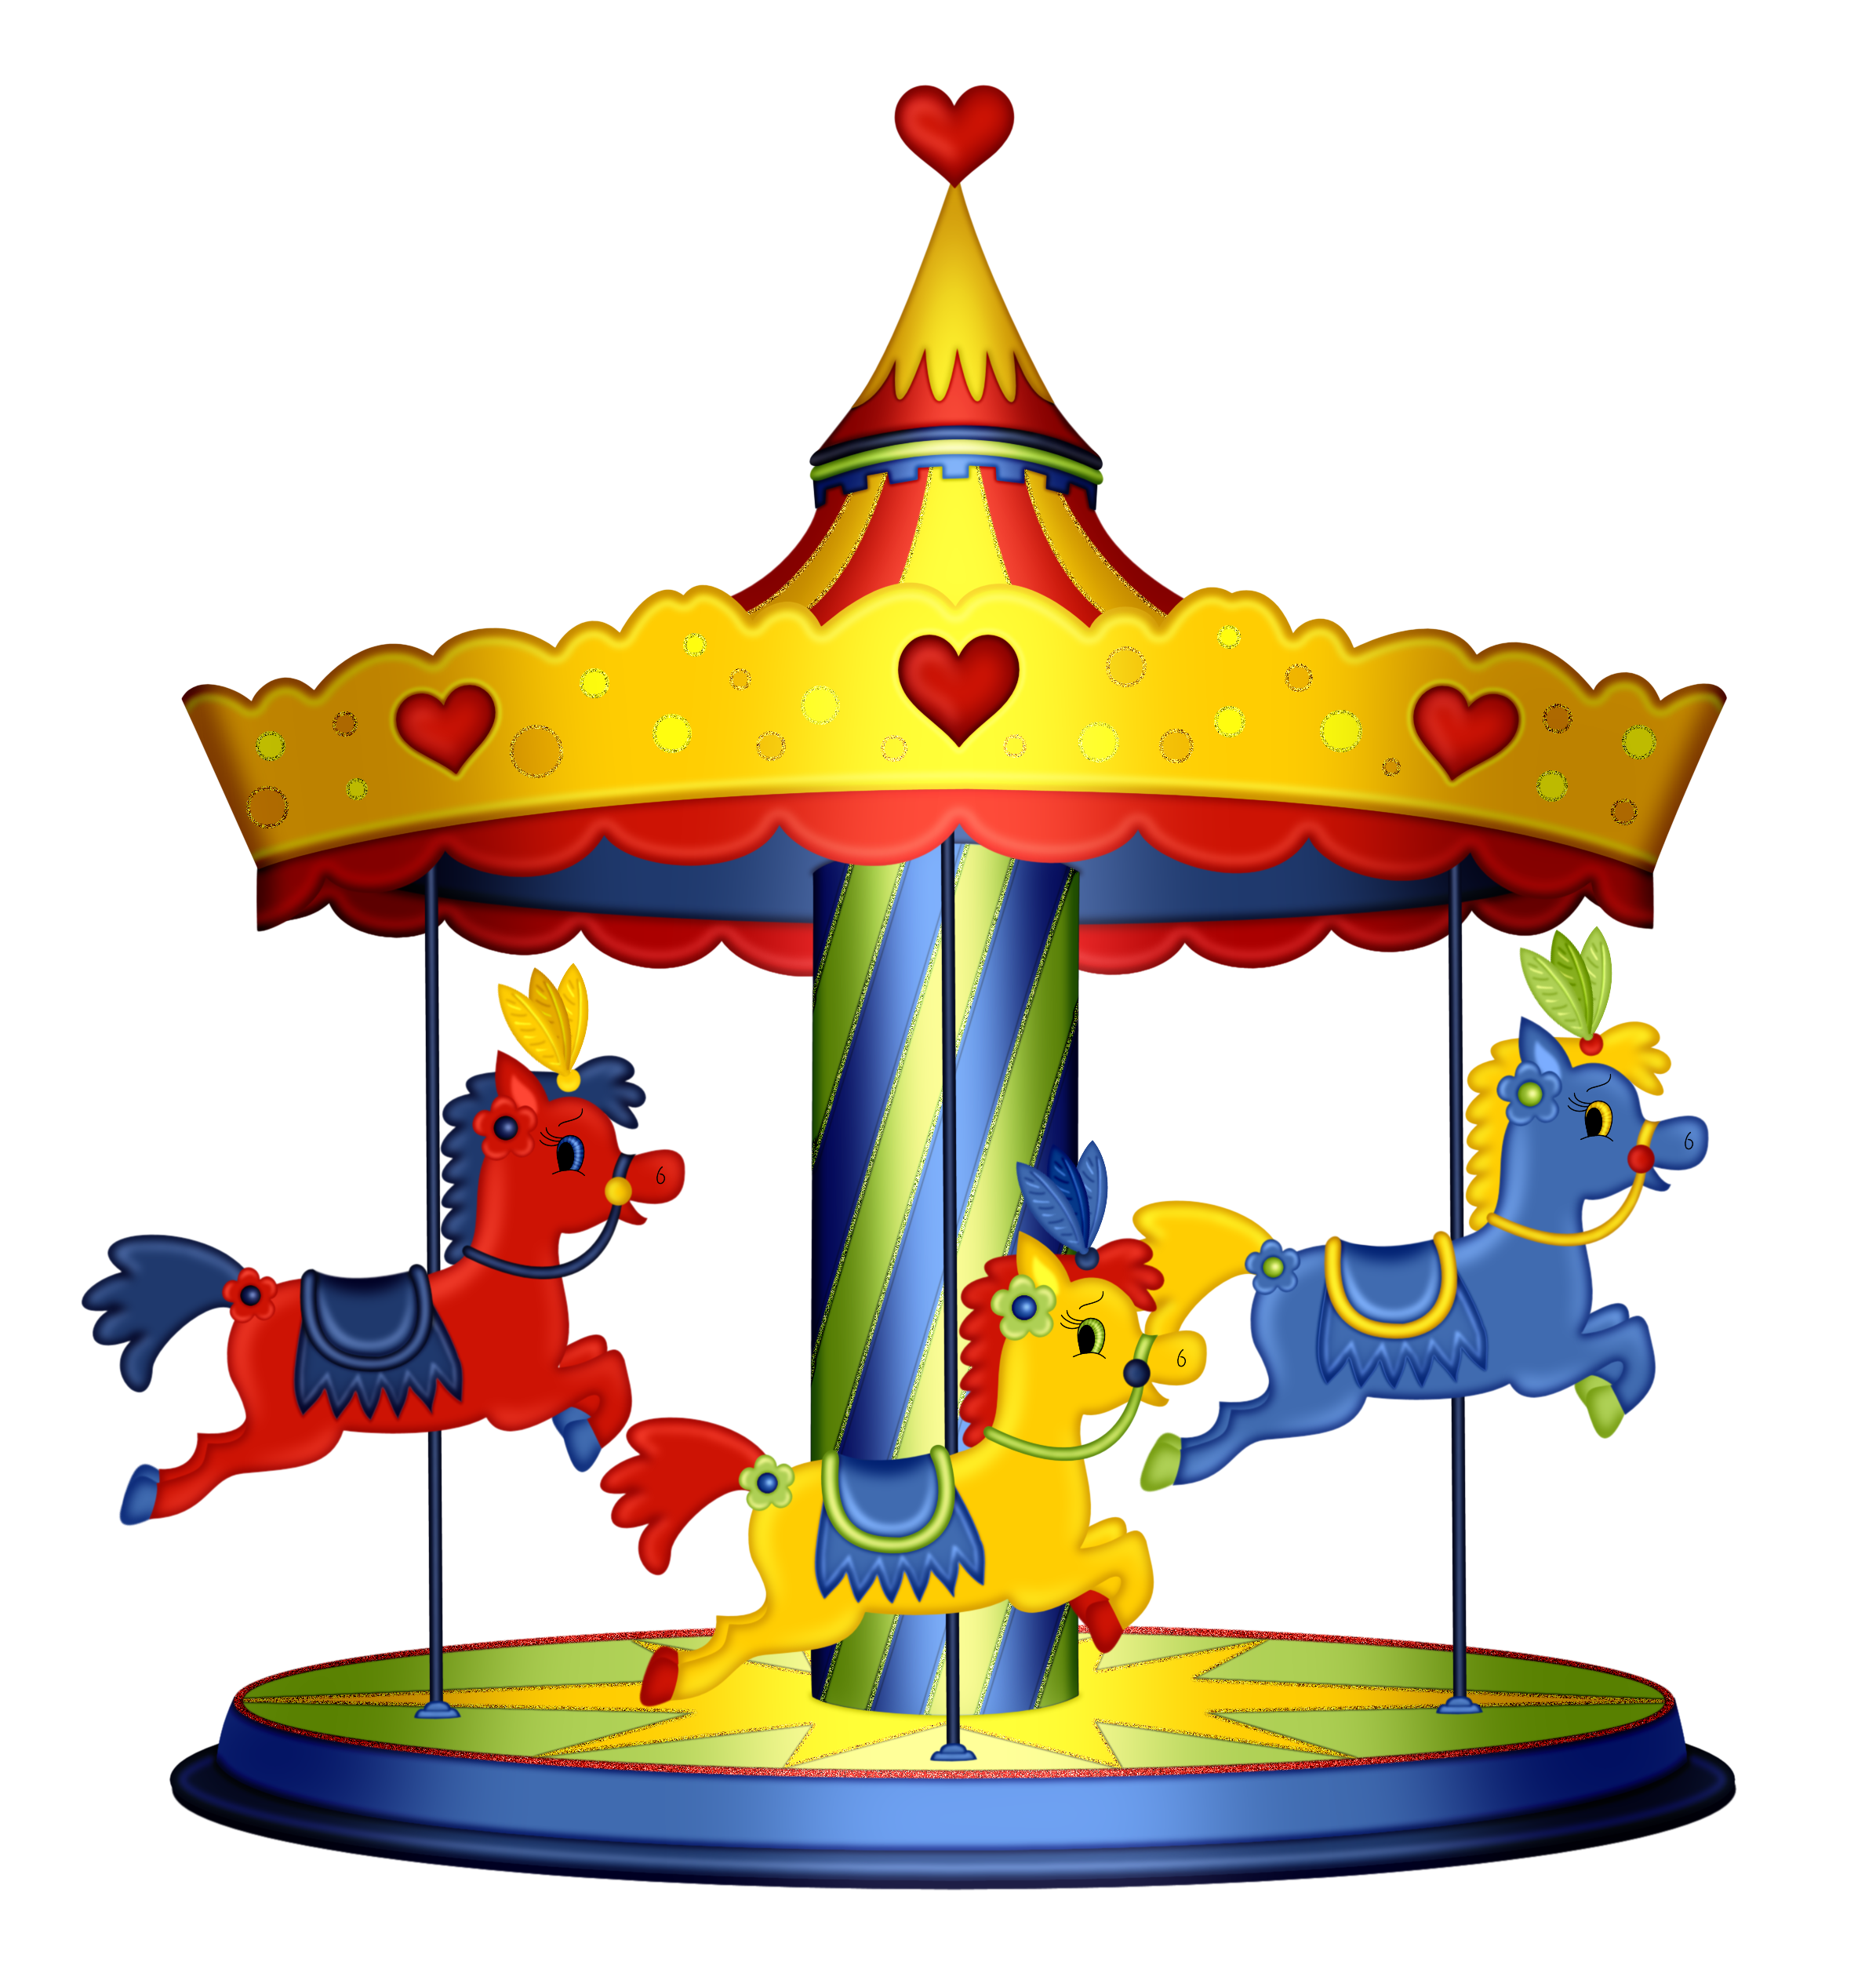 banner freeuse stock Bounce house orlando amusements. Carousel clipart kids carnival games.